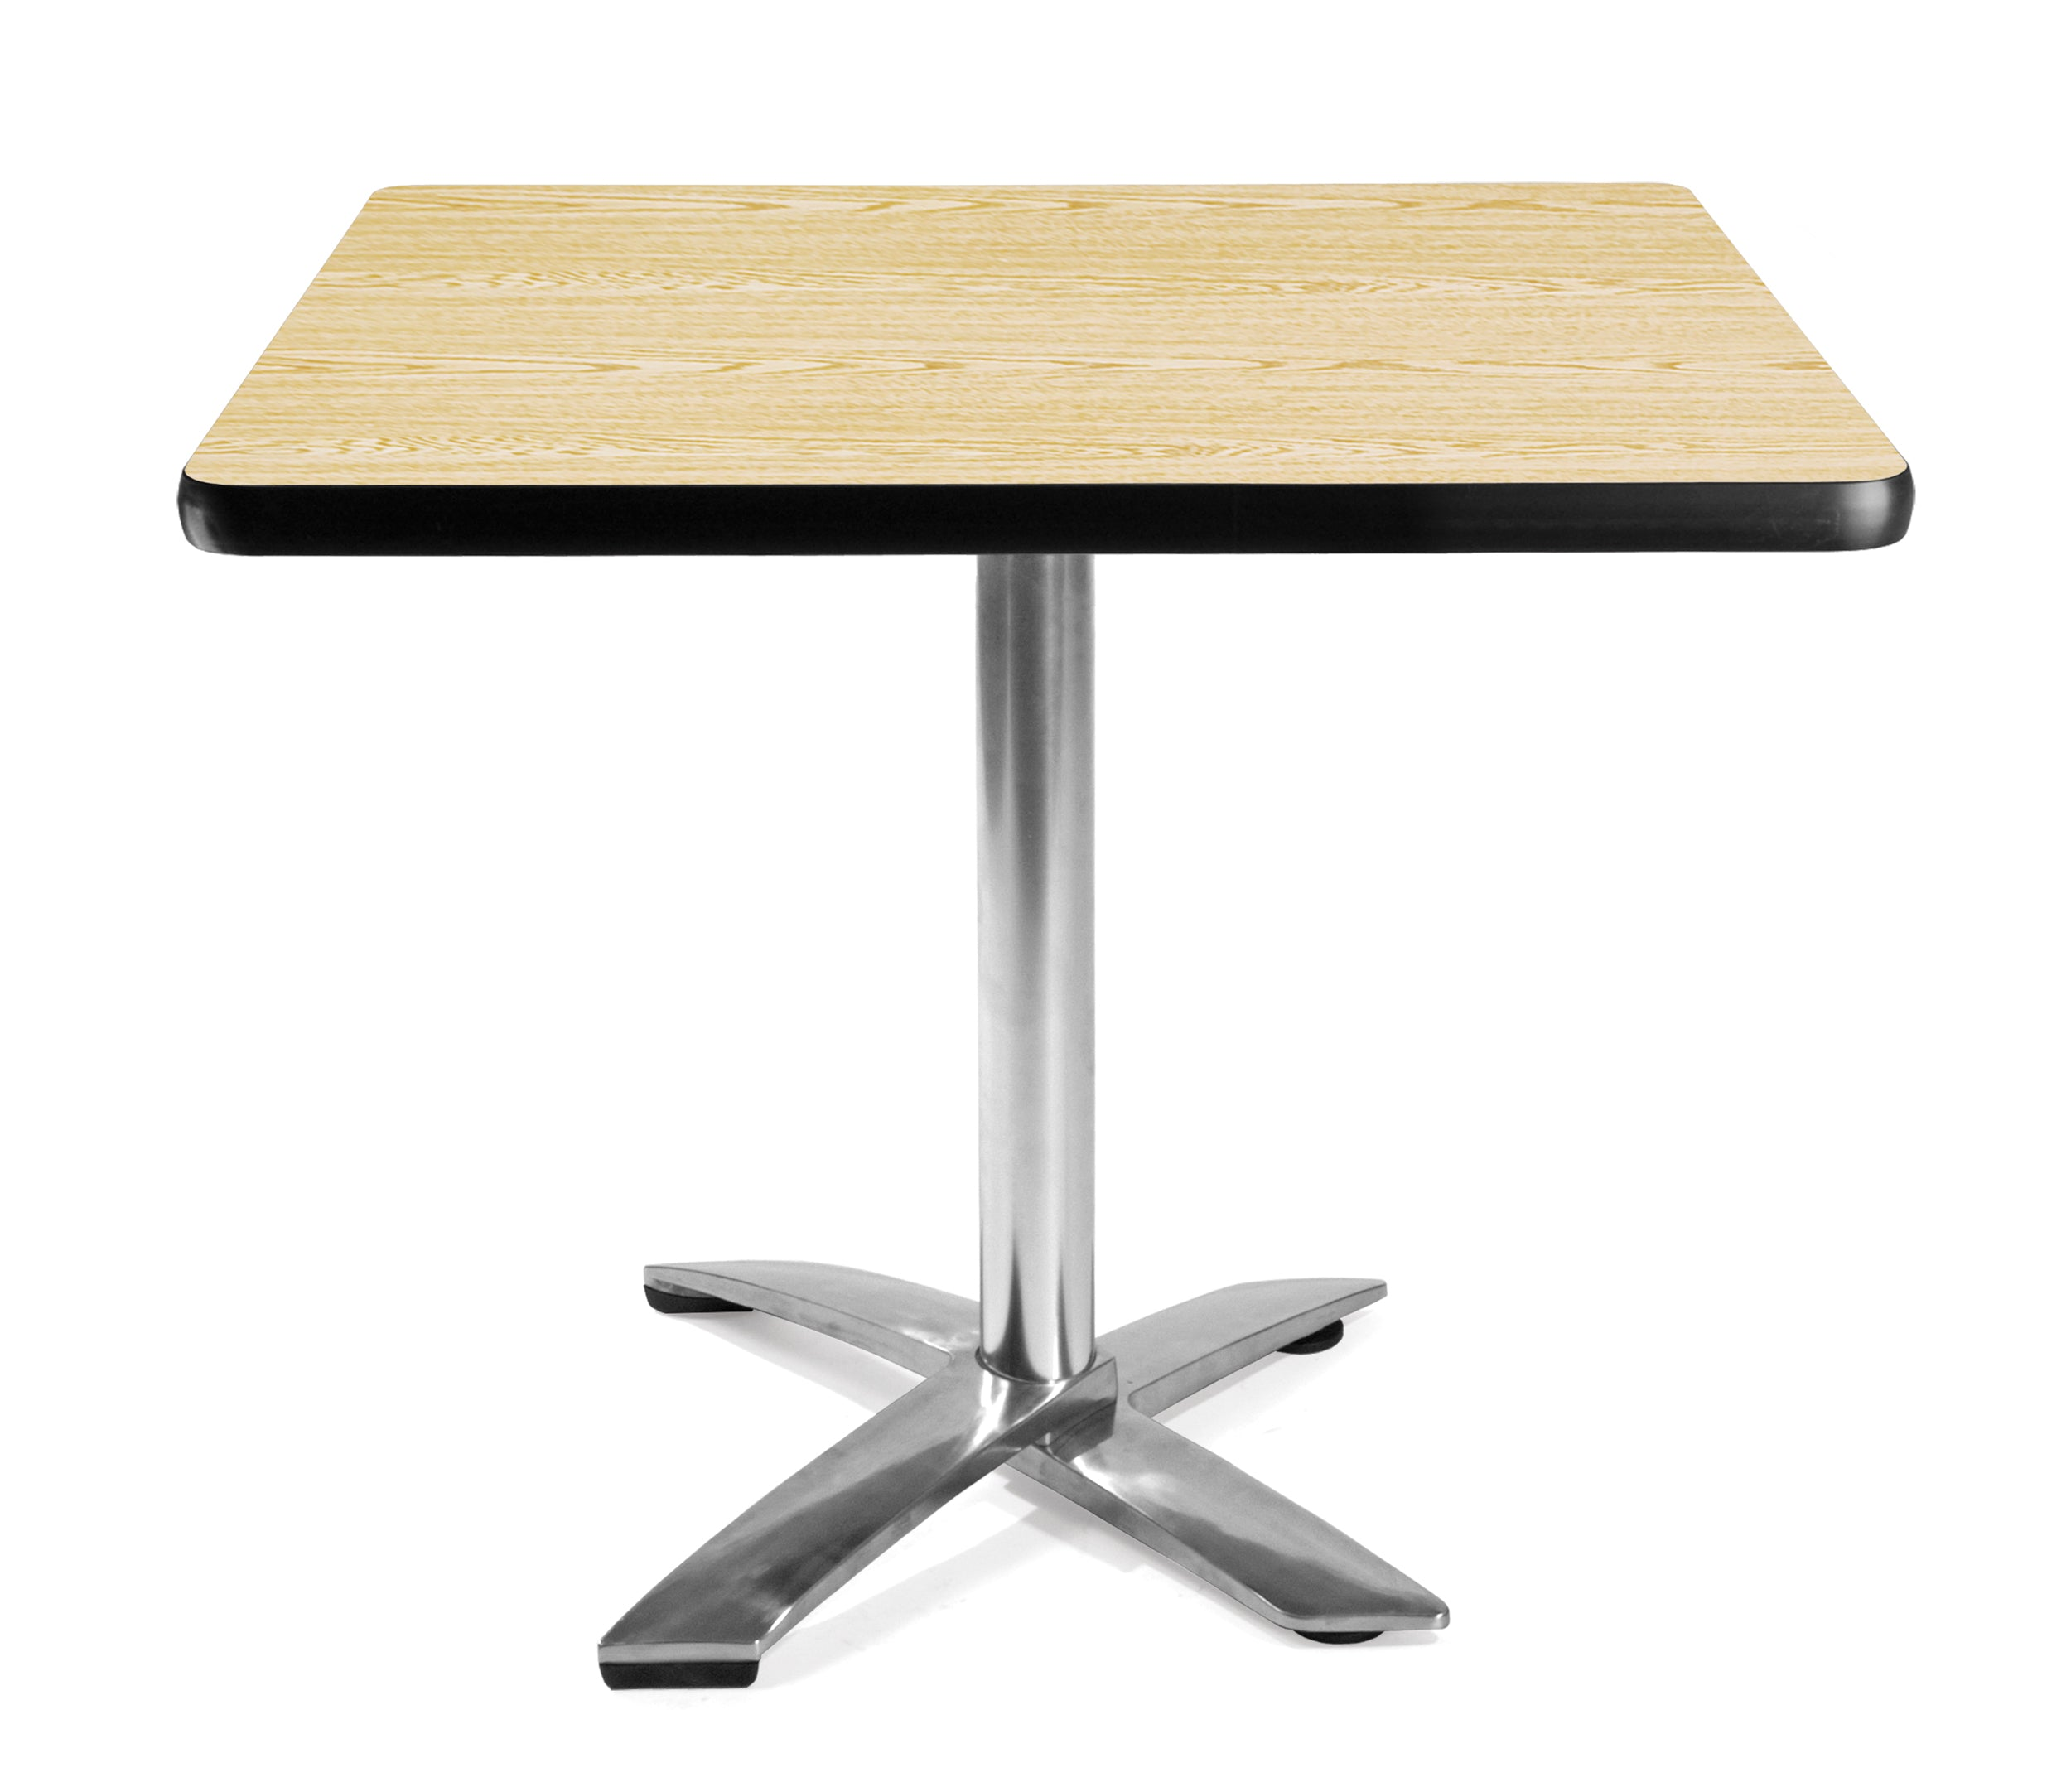 Ofminc Model FT36SQ 36 Inch Square Flip-Top Multi-Purpose Table